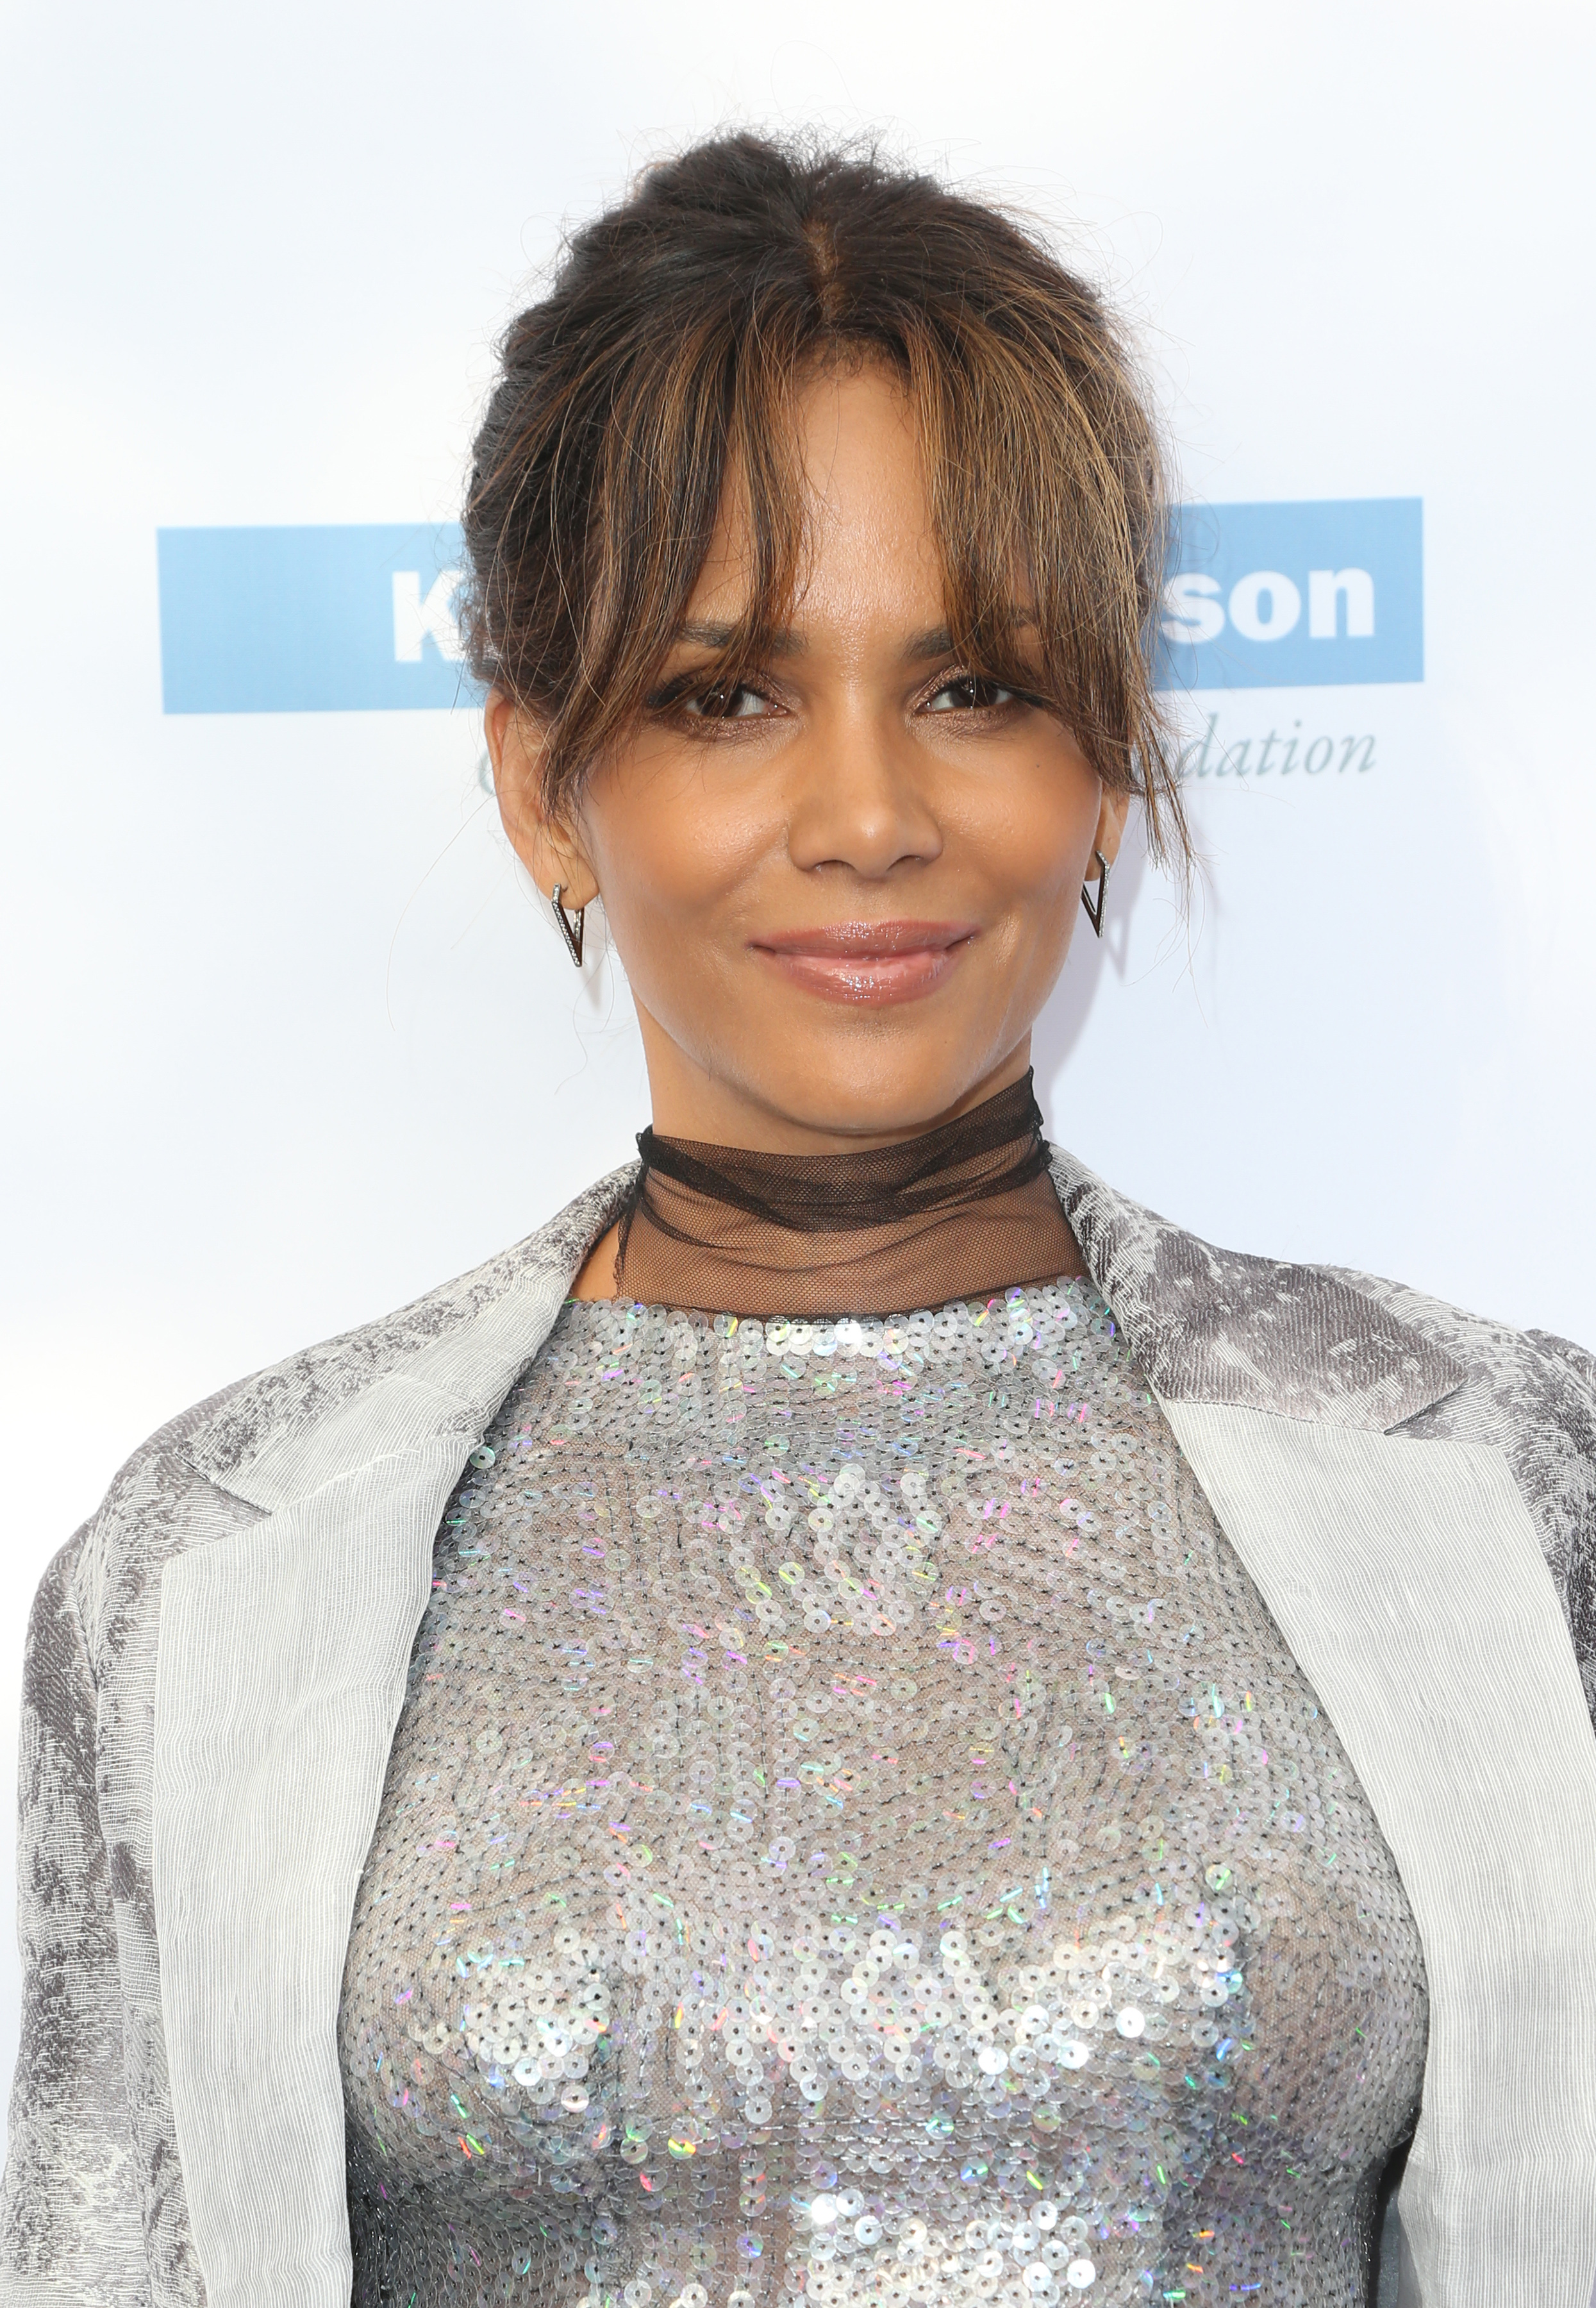 16th Annual Chrysalis Butterfly Ball - Arrivals  Featuring: Halle Berry Where: Brentwood, California, United States When: 04 Jun 2017 Credit: FayesVision/WENN.com